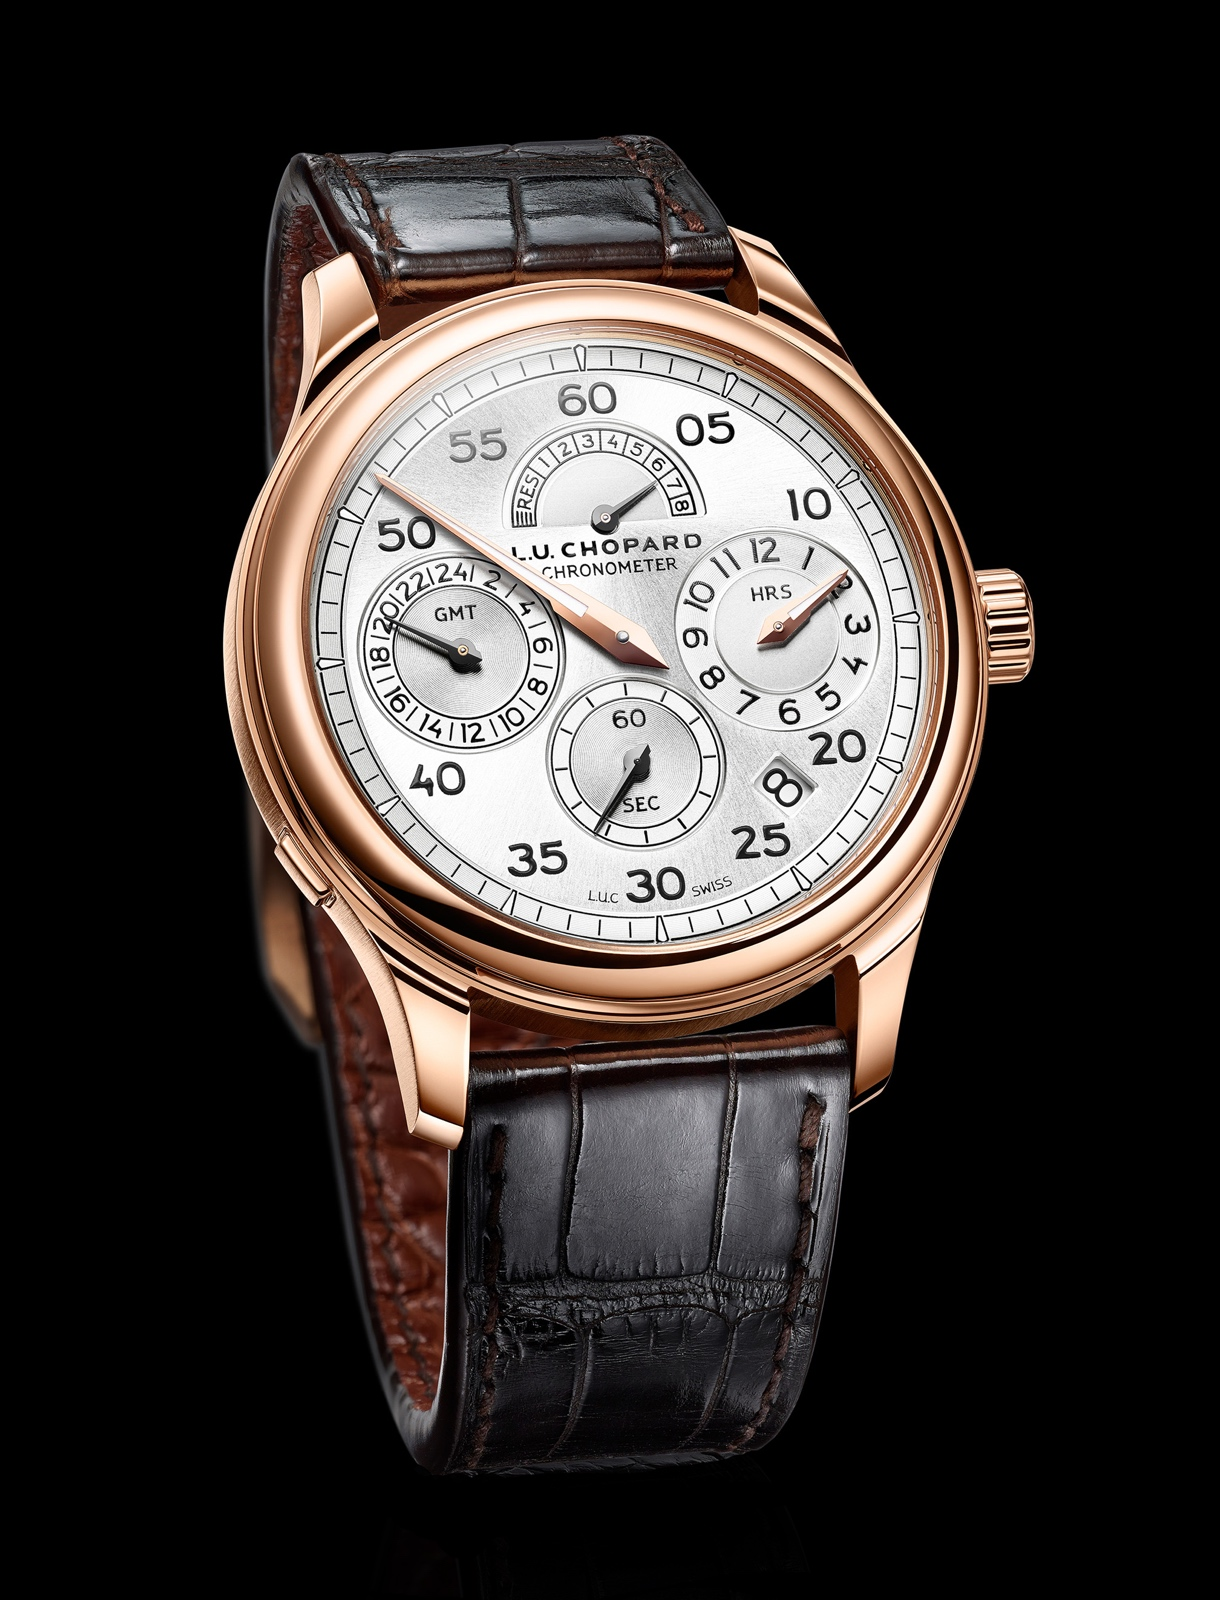 Chopard LUC Regulator